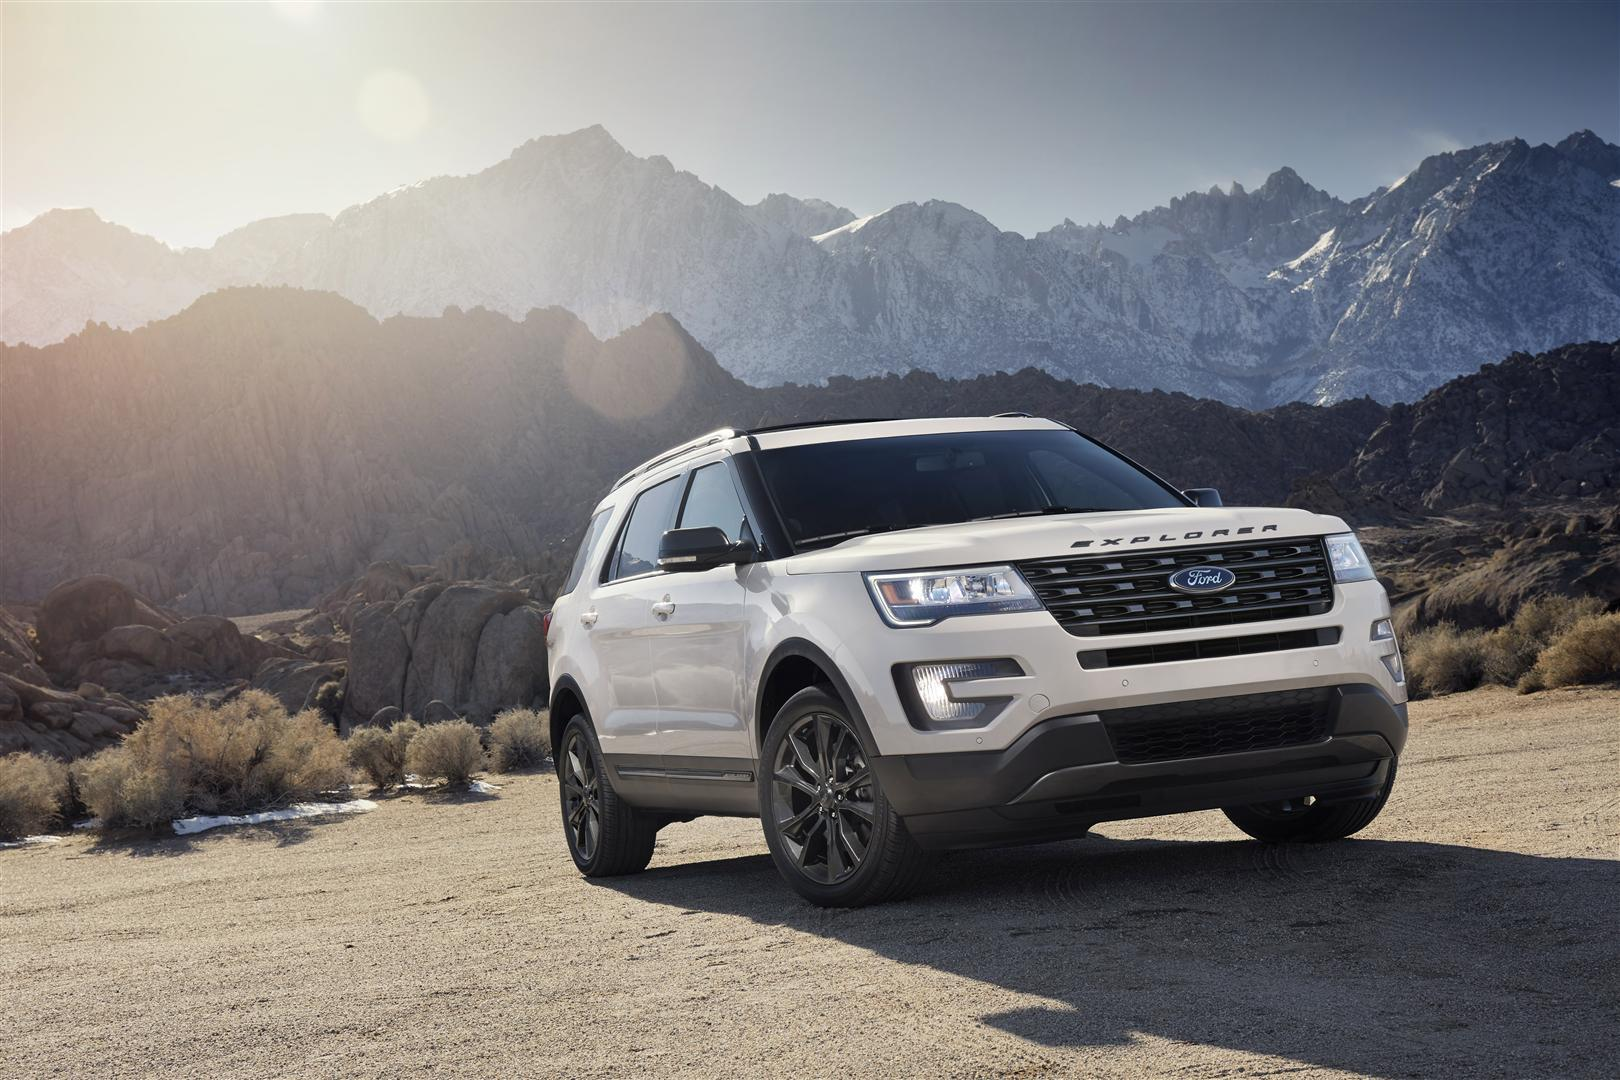 2020 Ford Explorer Best SUV With 3Rd Row Seating